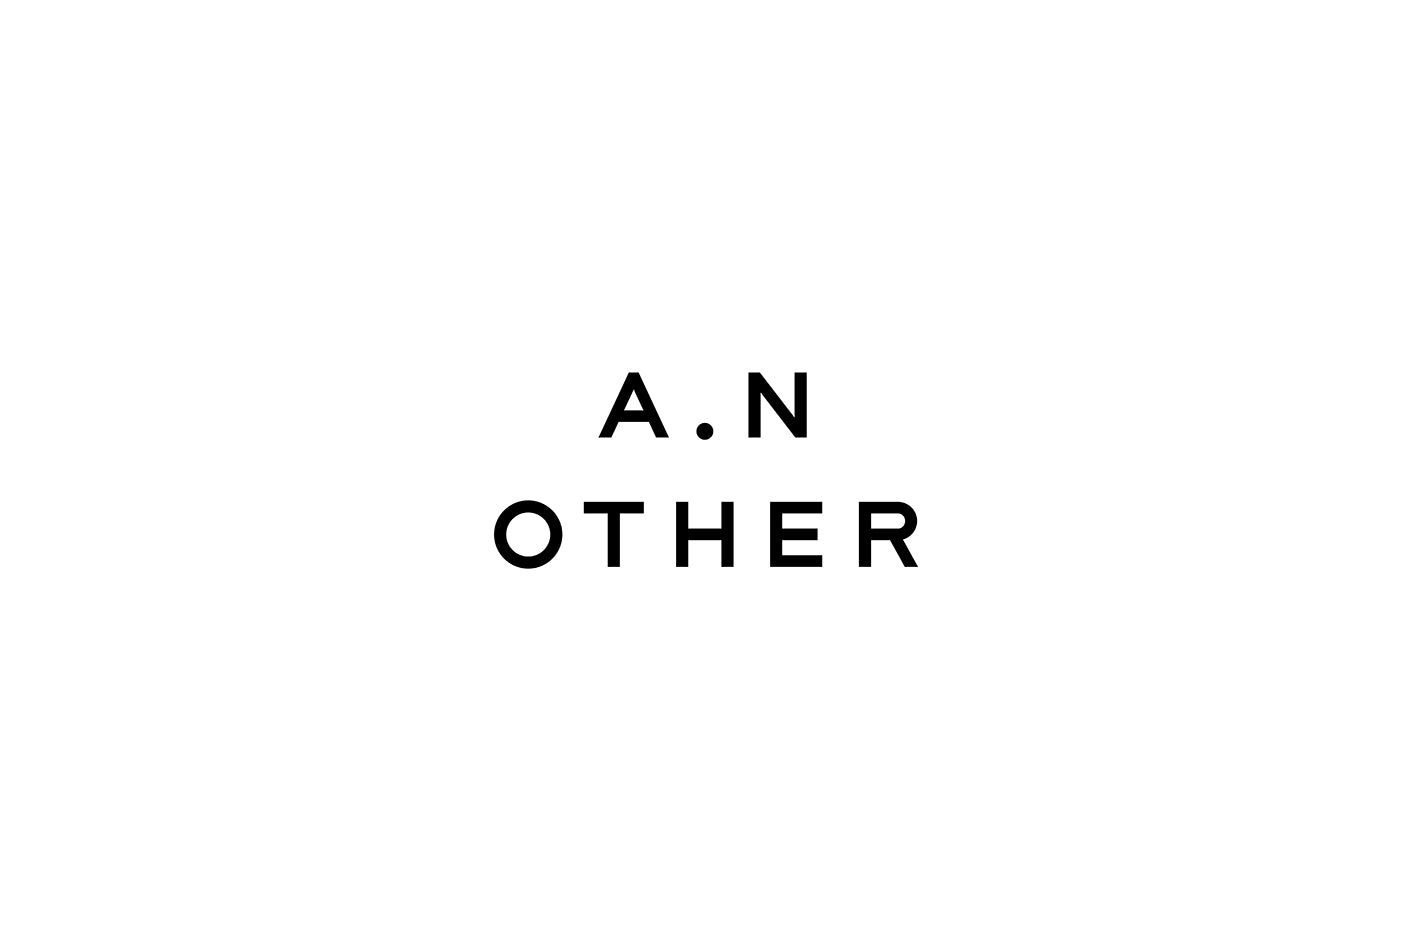 SocioDesign: A.N. Other